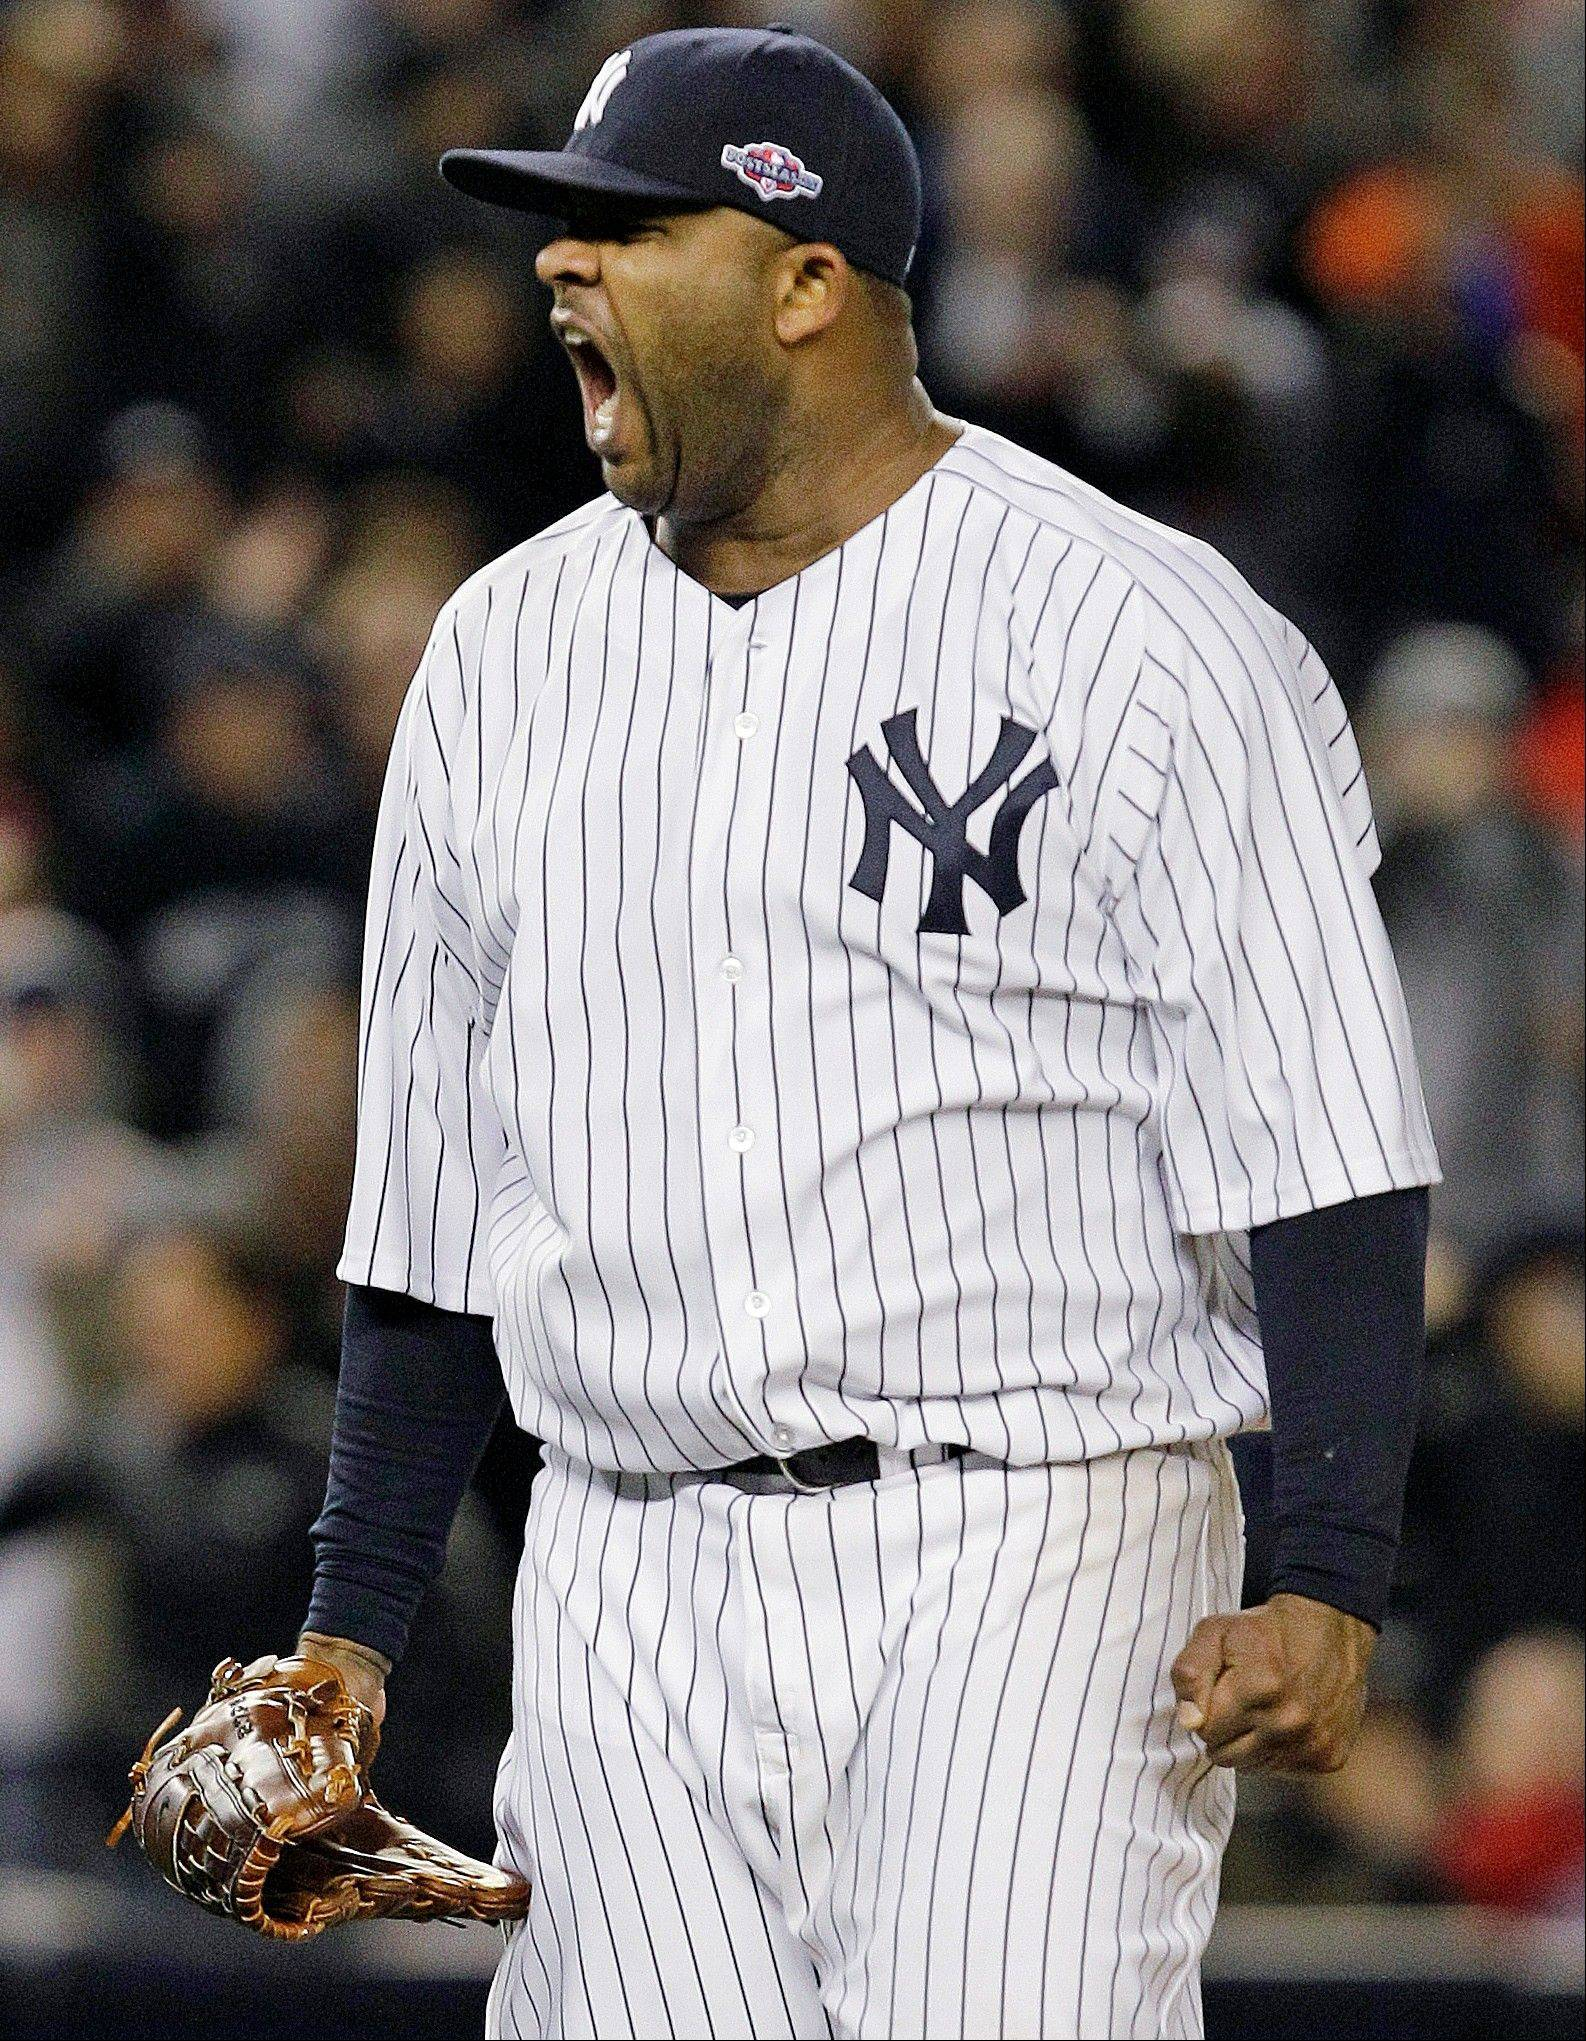 New York Yankees starting pitcher CC Sabathia reacts Friday after Baltimore Orioles shortstop J.J. Hardy grounded out to end the eighth inning of Game 5 of the American League division baseball series in New York. The Yankees won the game 3-1.